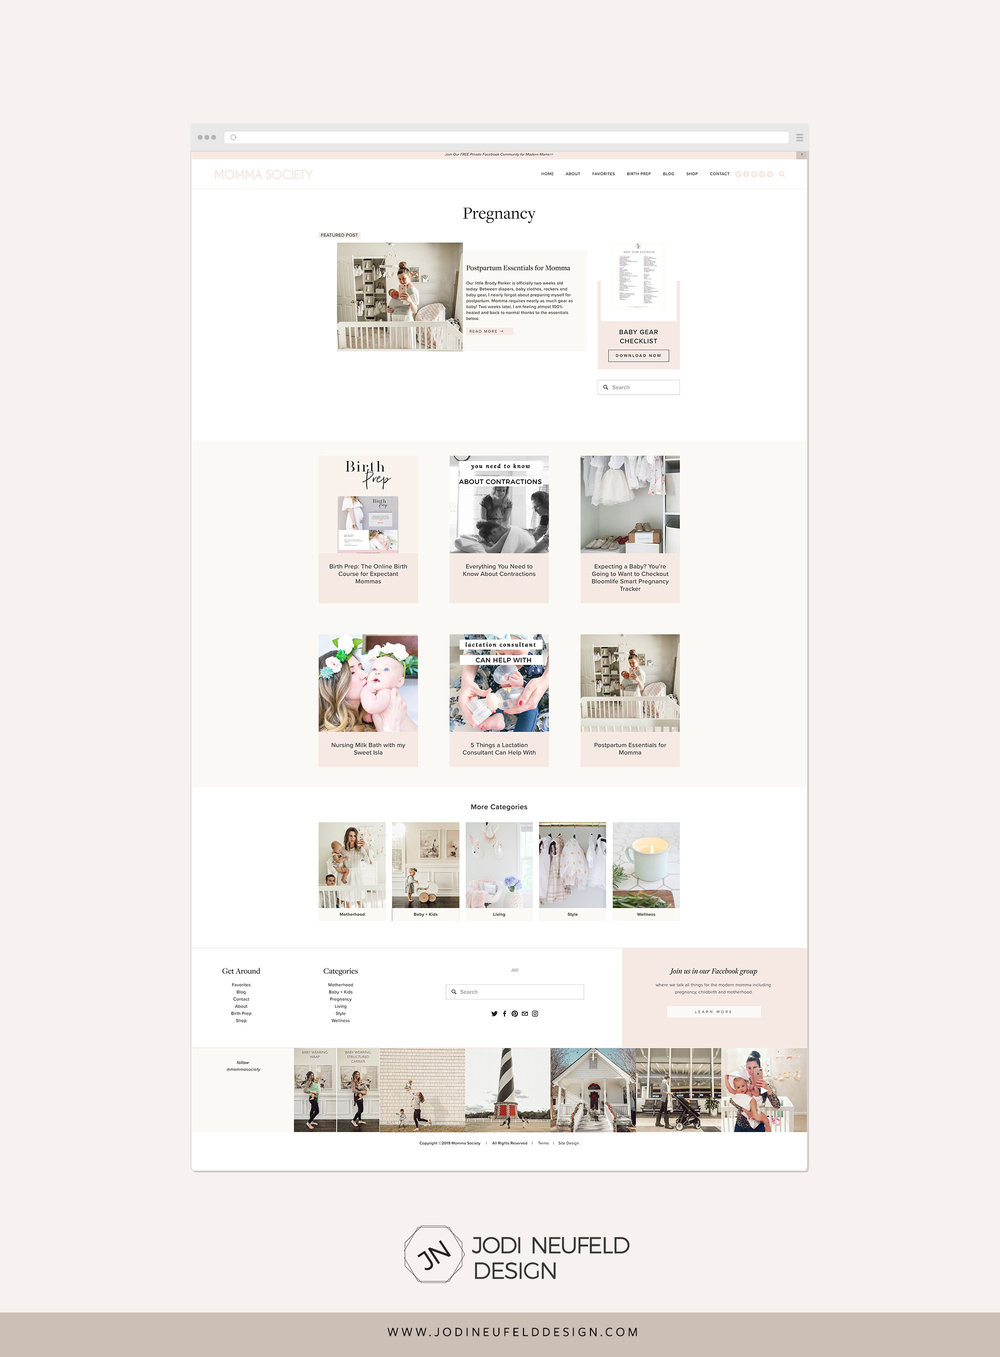 Momma Society Blog post page by category   Squarespace web design by Jodi Neufeld Design